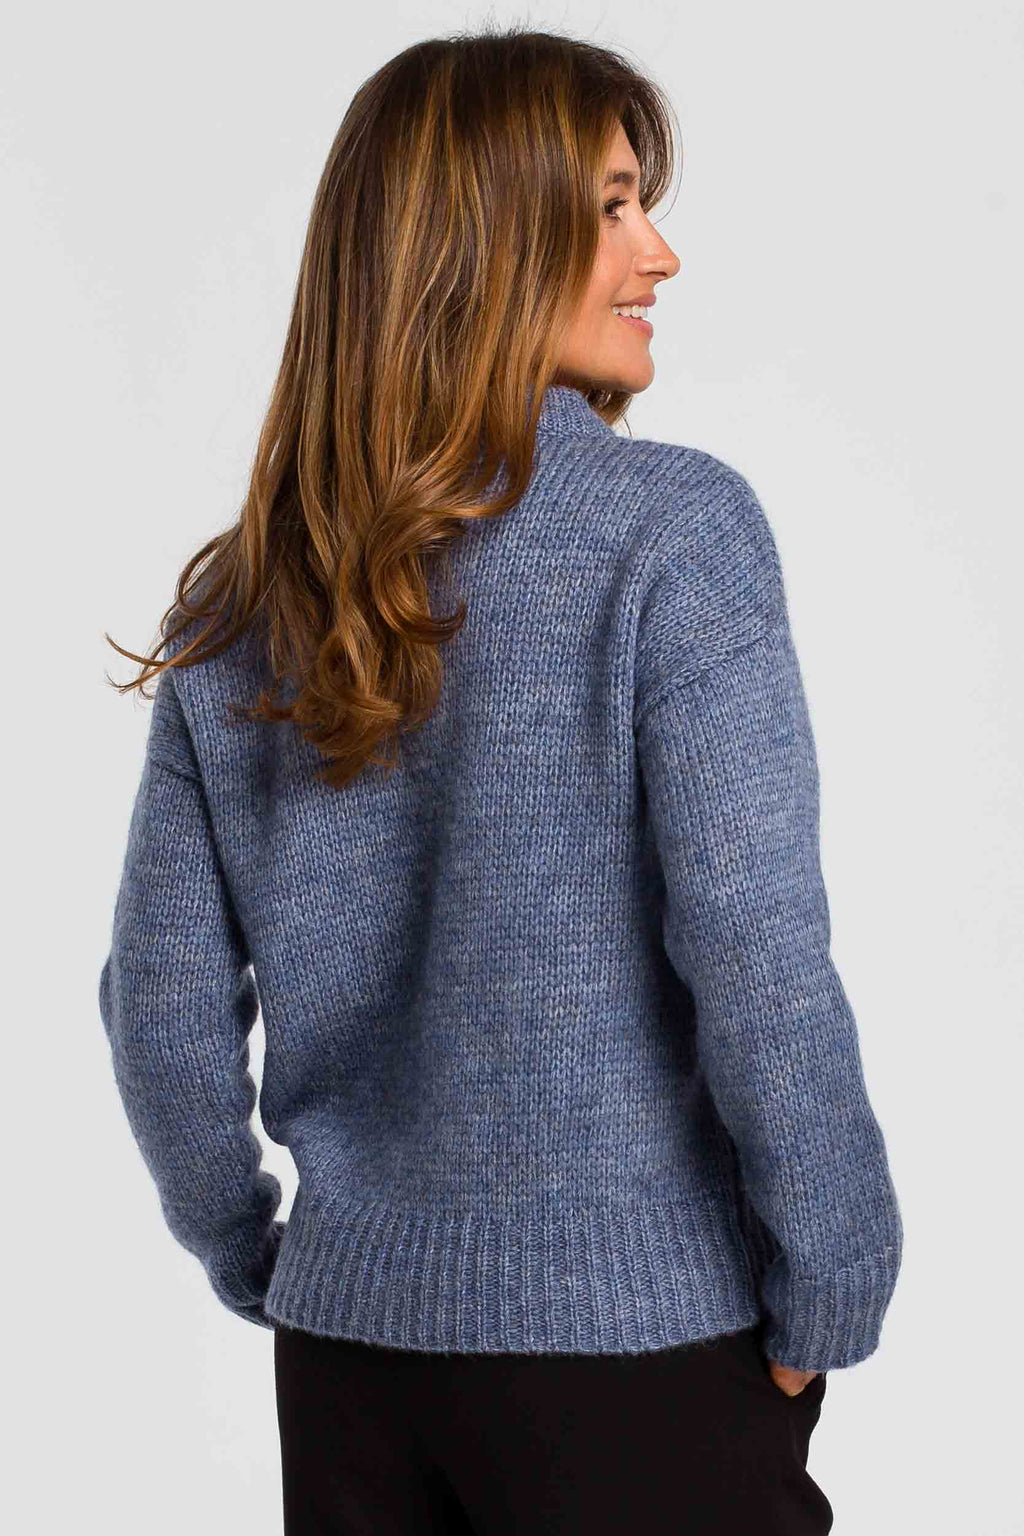 Blue Lightweight Sweater - So Chic Boutique